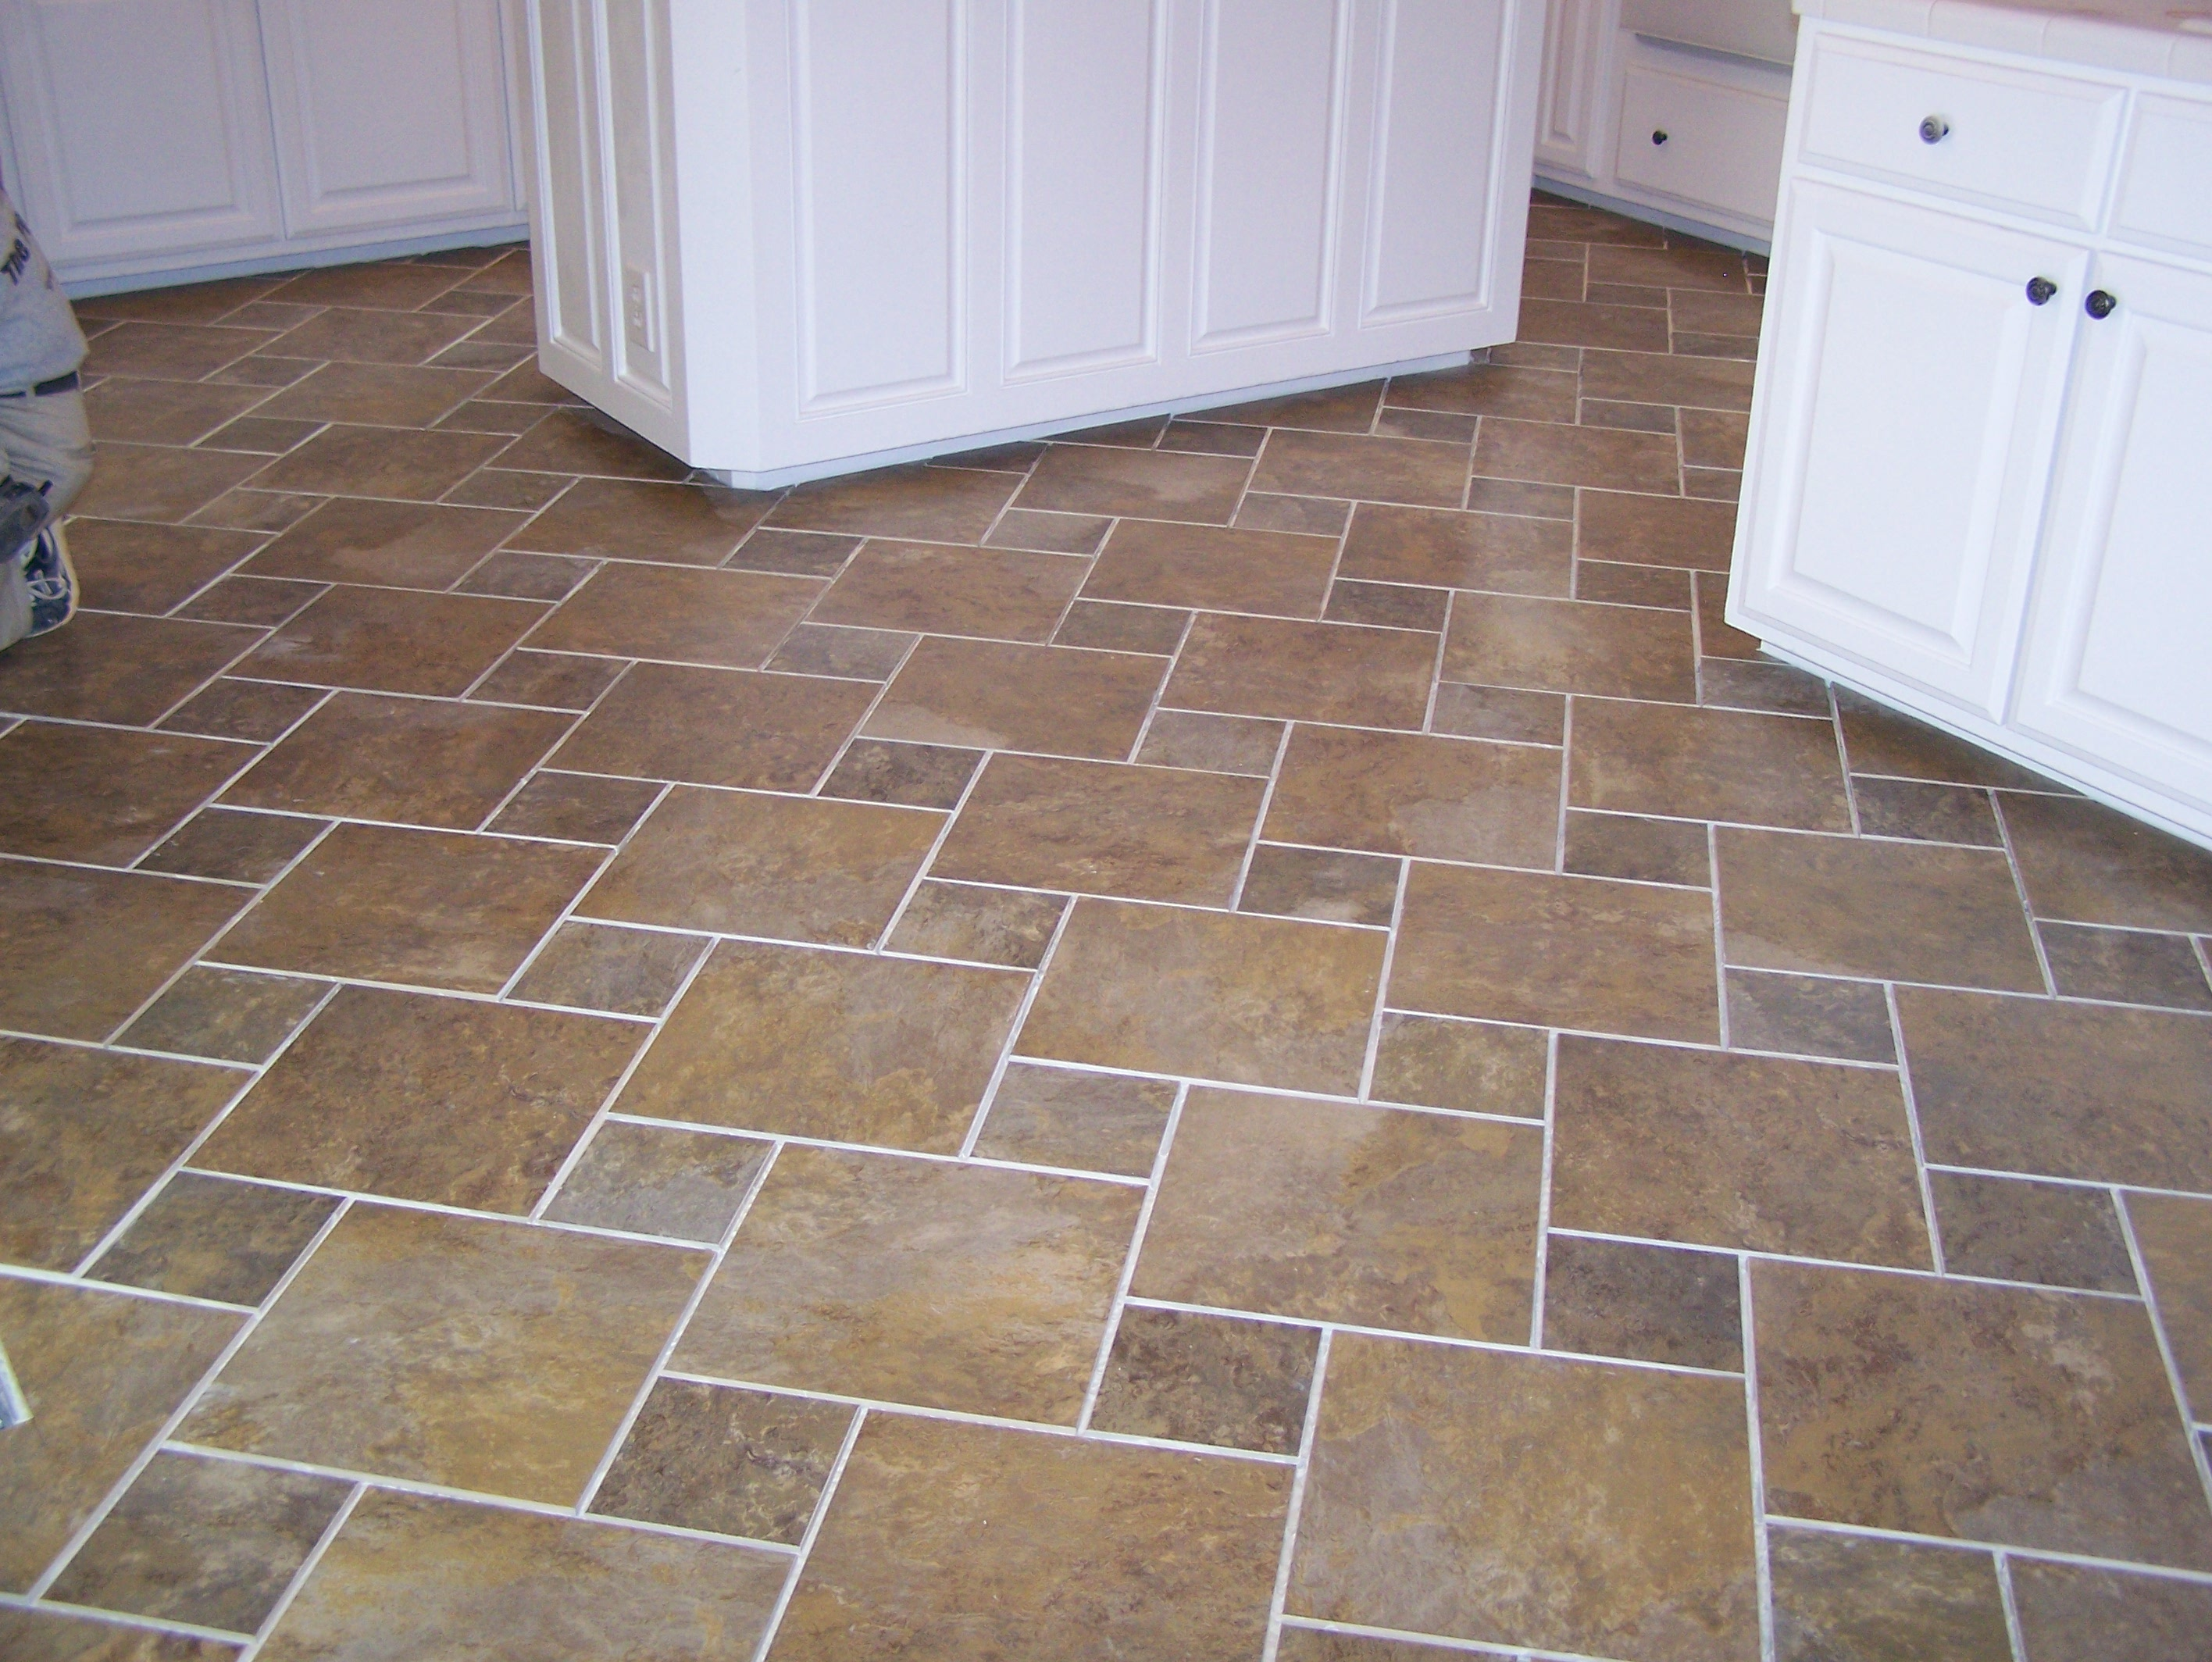 Tile and wood floor layouts discount flooring blog tile design dailygadgetfo Choice Image